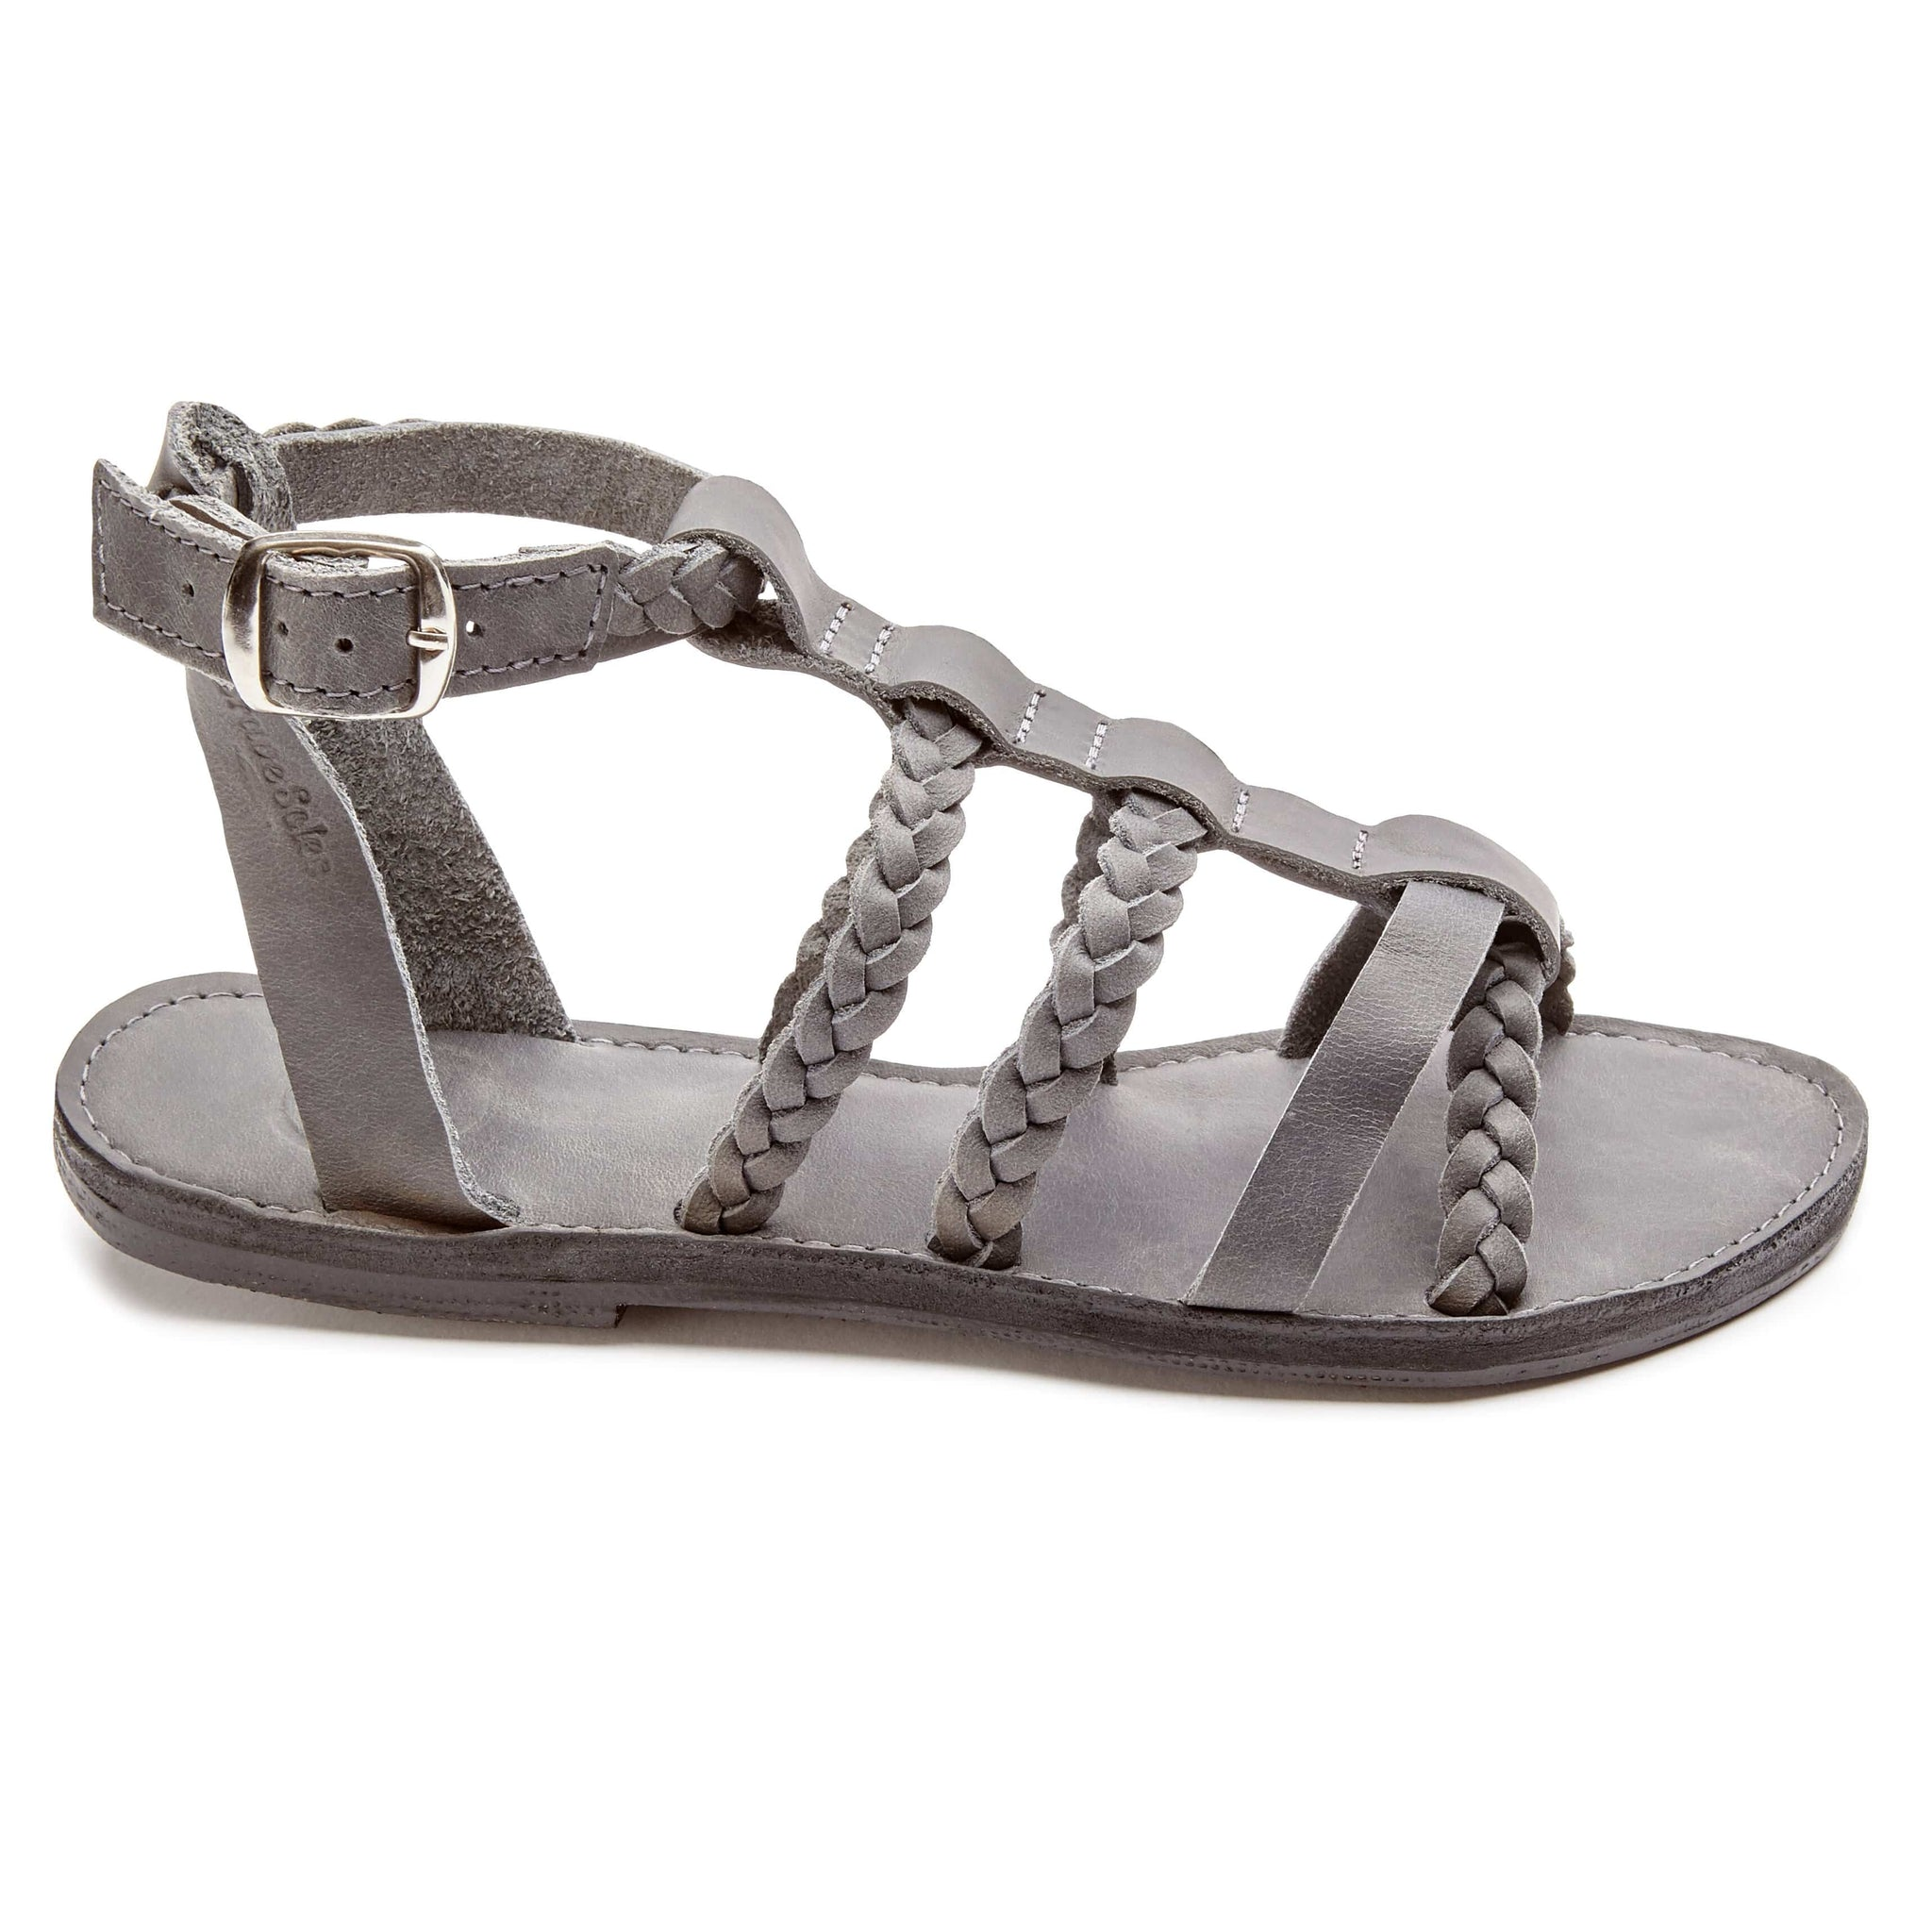 The Kaitlin Leather Gladiator Sandal